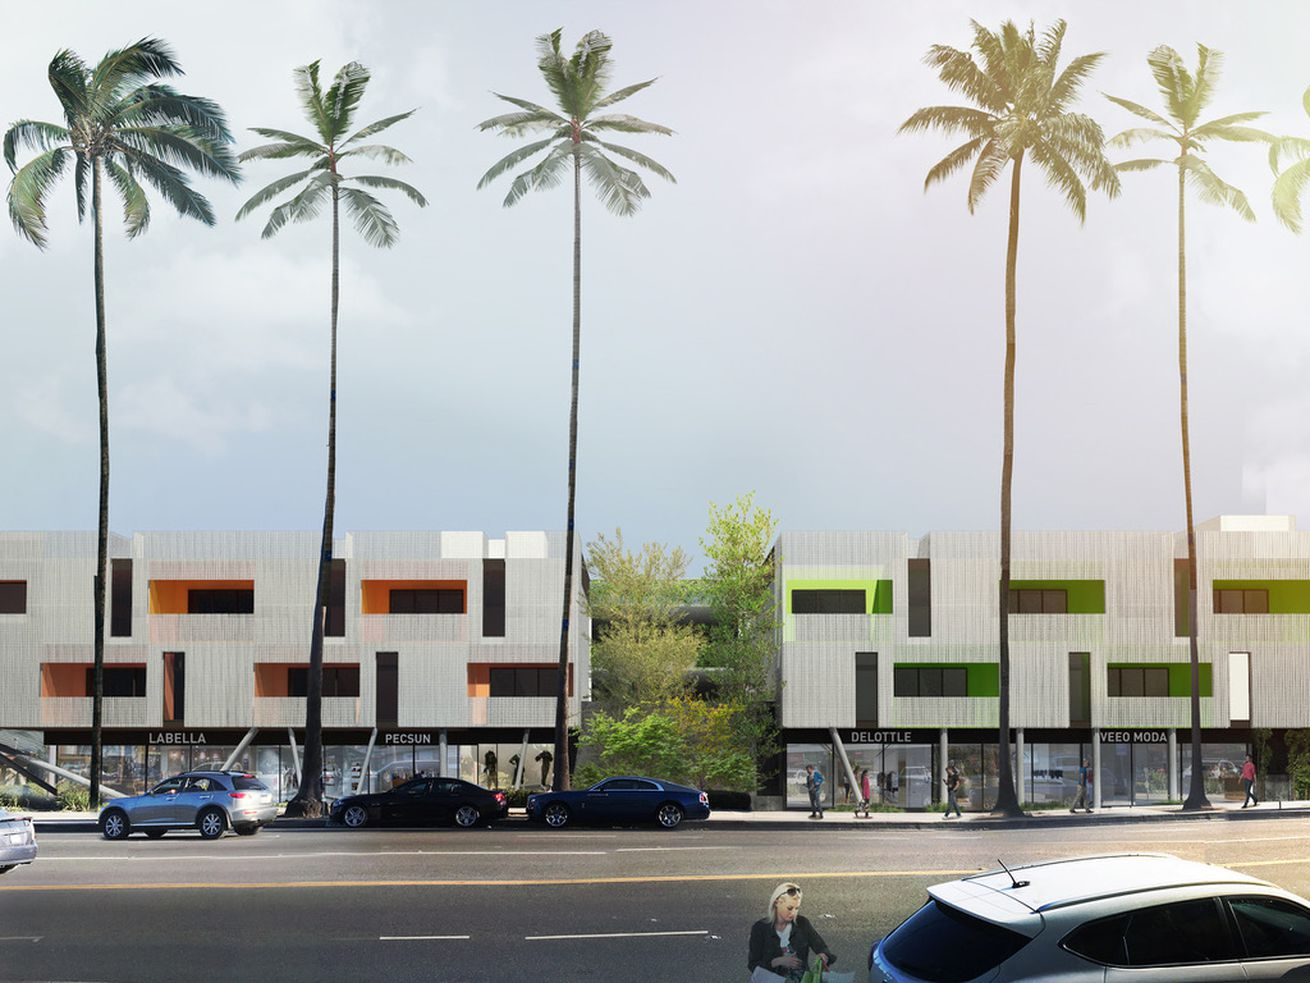 The Santa Monica and Yale project, which is slated to break ground within the next month and a half.